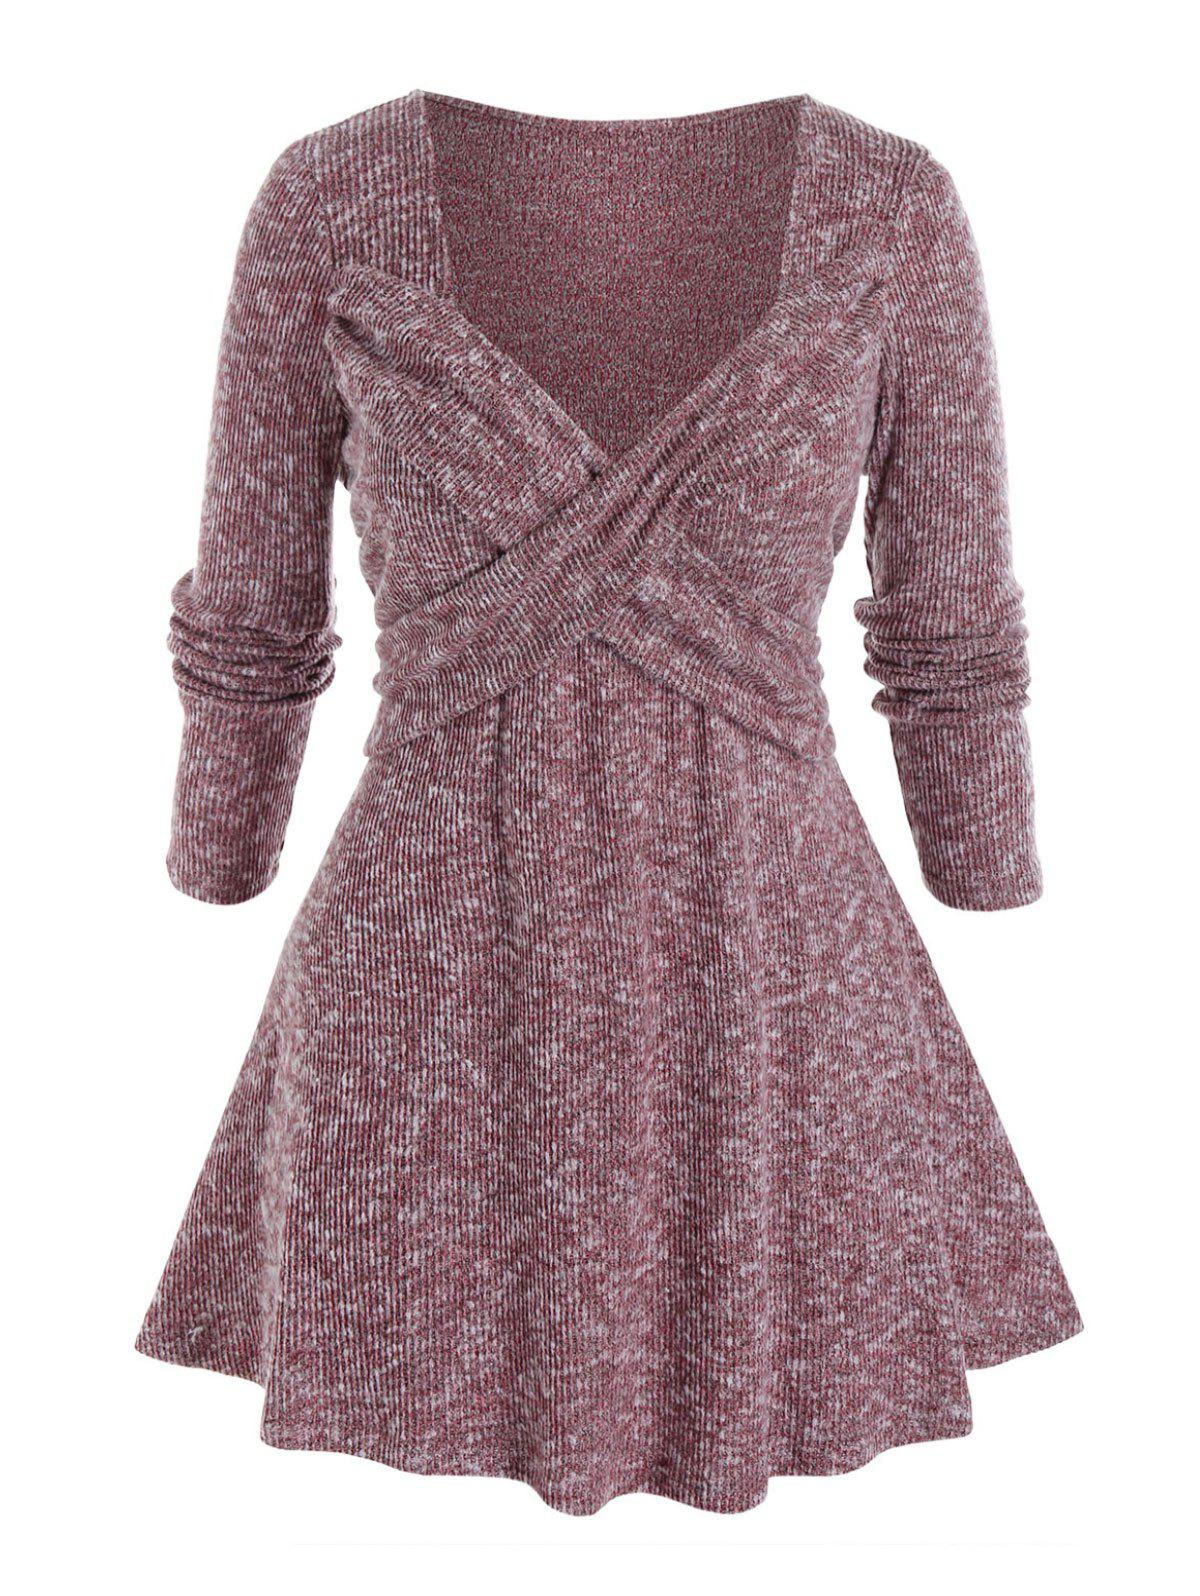 Plus Size Crossover Sweetheart Neck Tunic Knit Sweater - RED WINE 5X